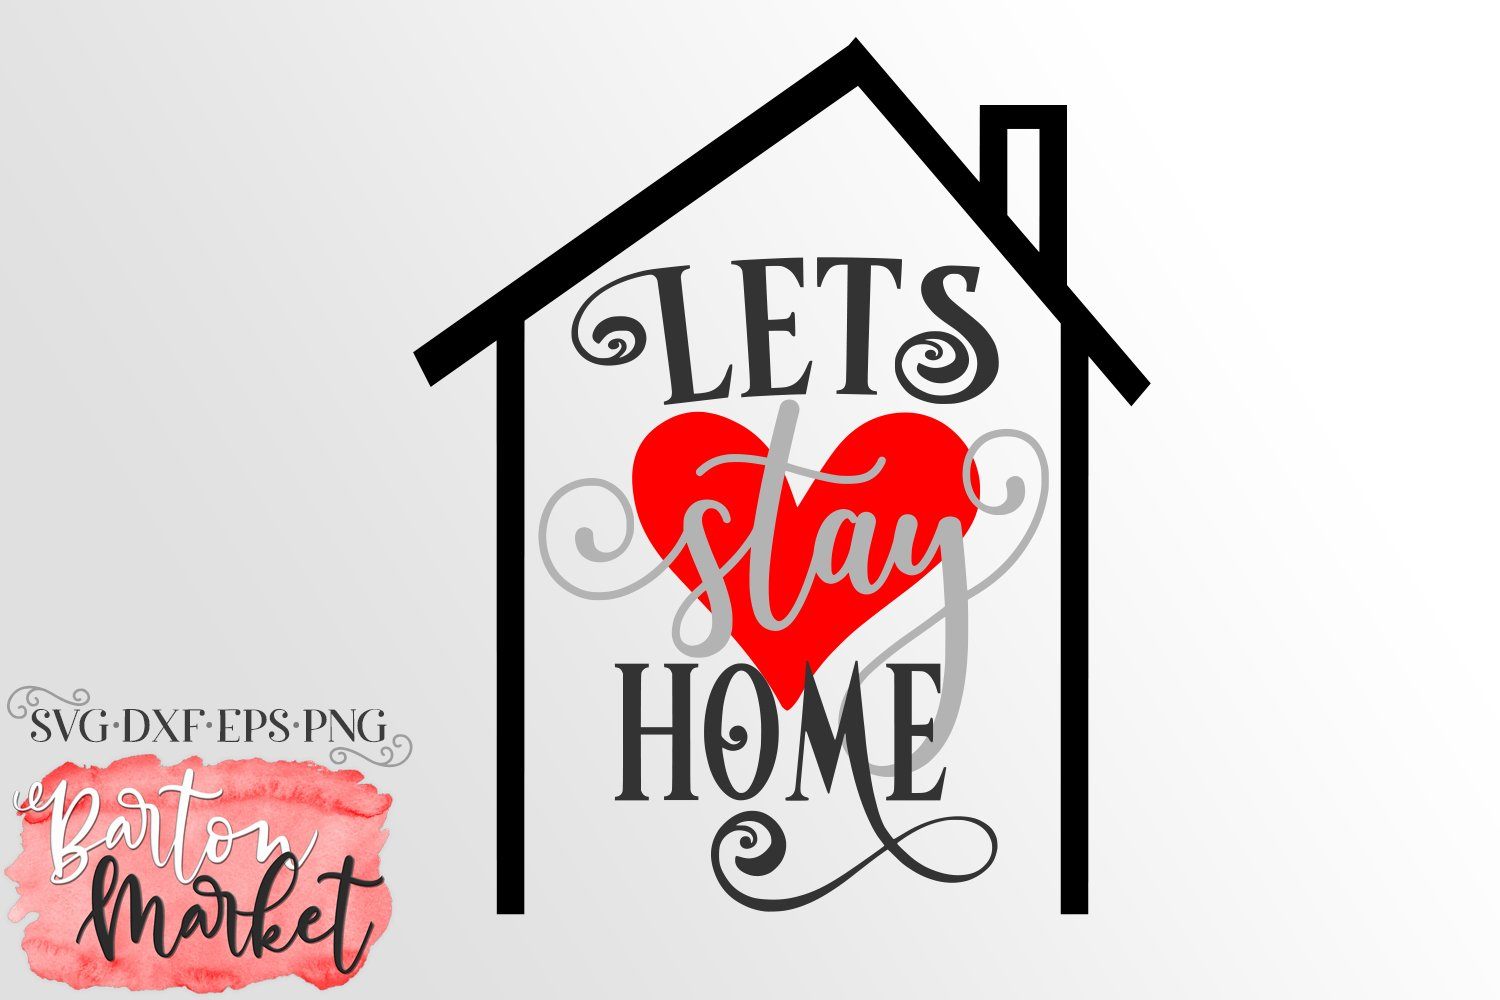 Lets Stay Home SVG DXF EPS PNG example image 2